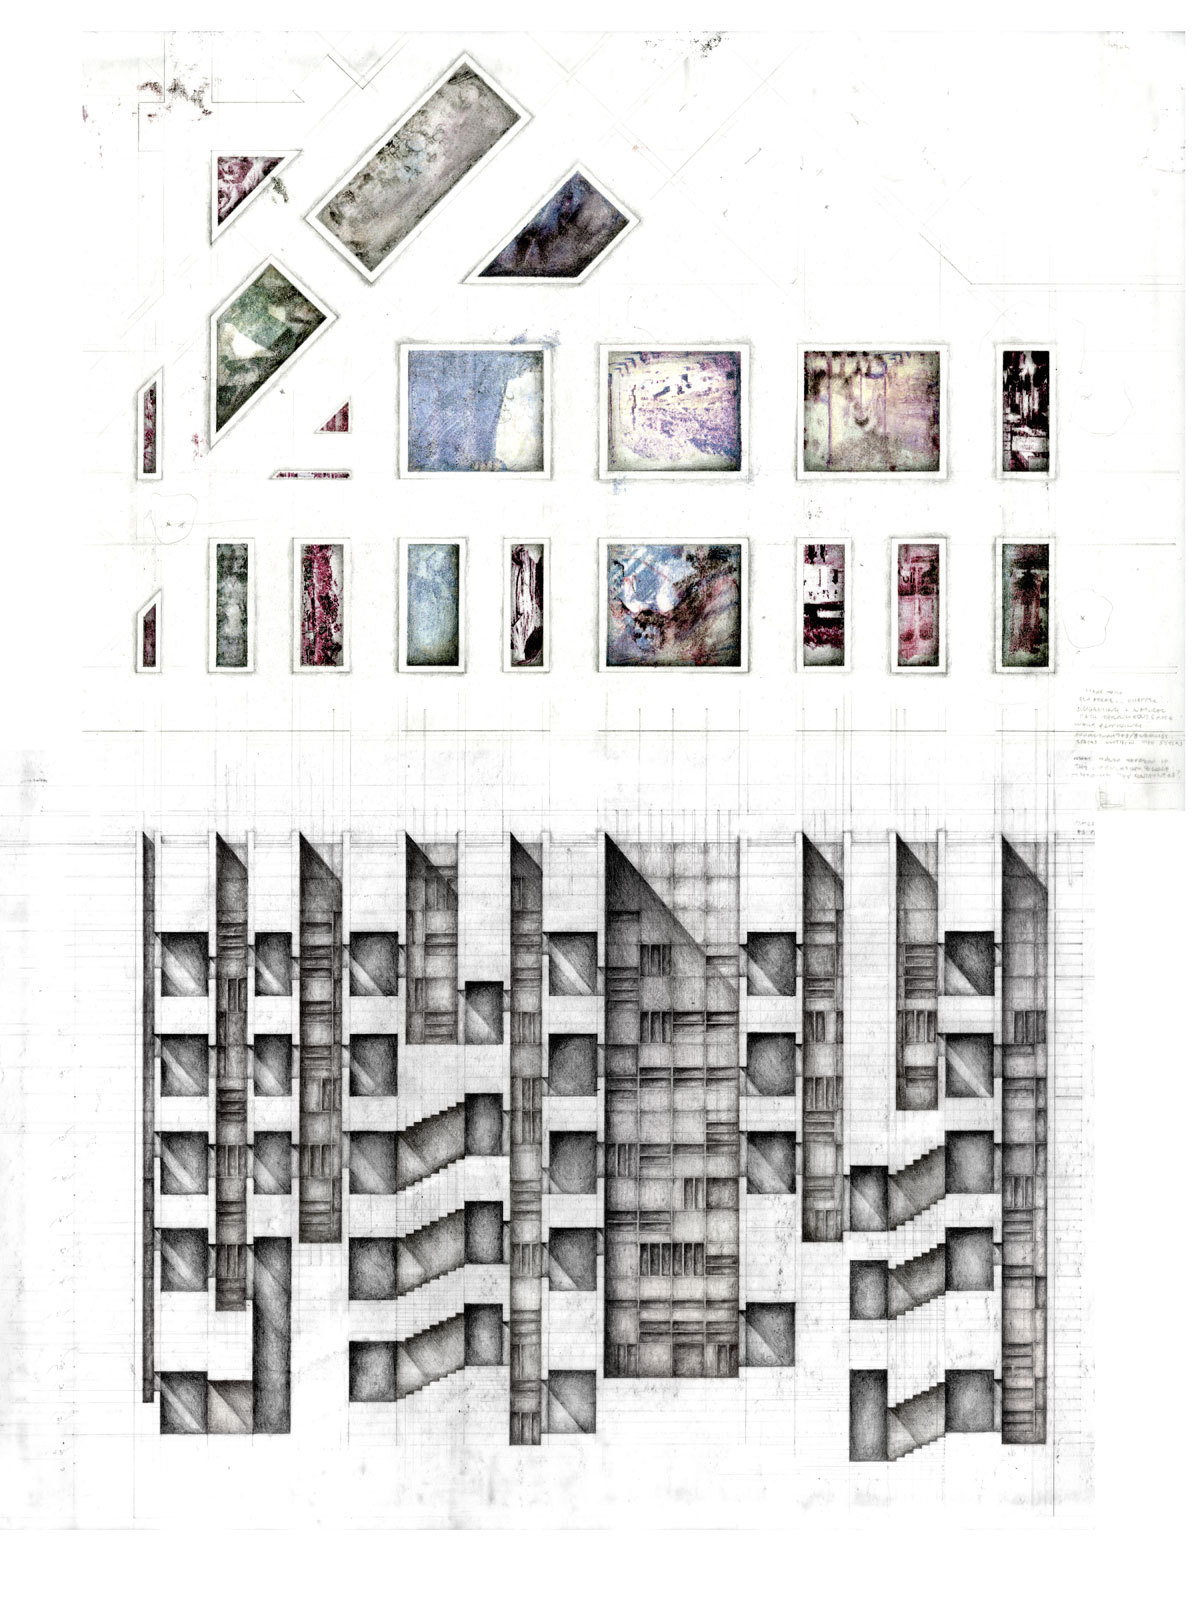 drawingarchitecture:  The Garden of Collective Memories Sarah Kia 2012. Graphite and photo transfer on vellum, 18 x 24 inches.